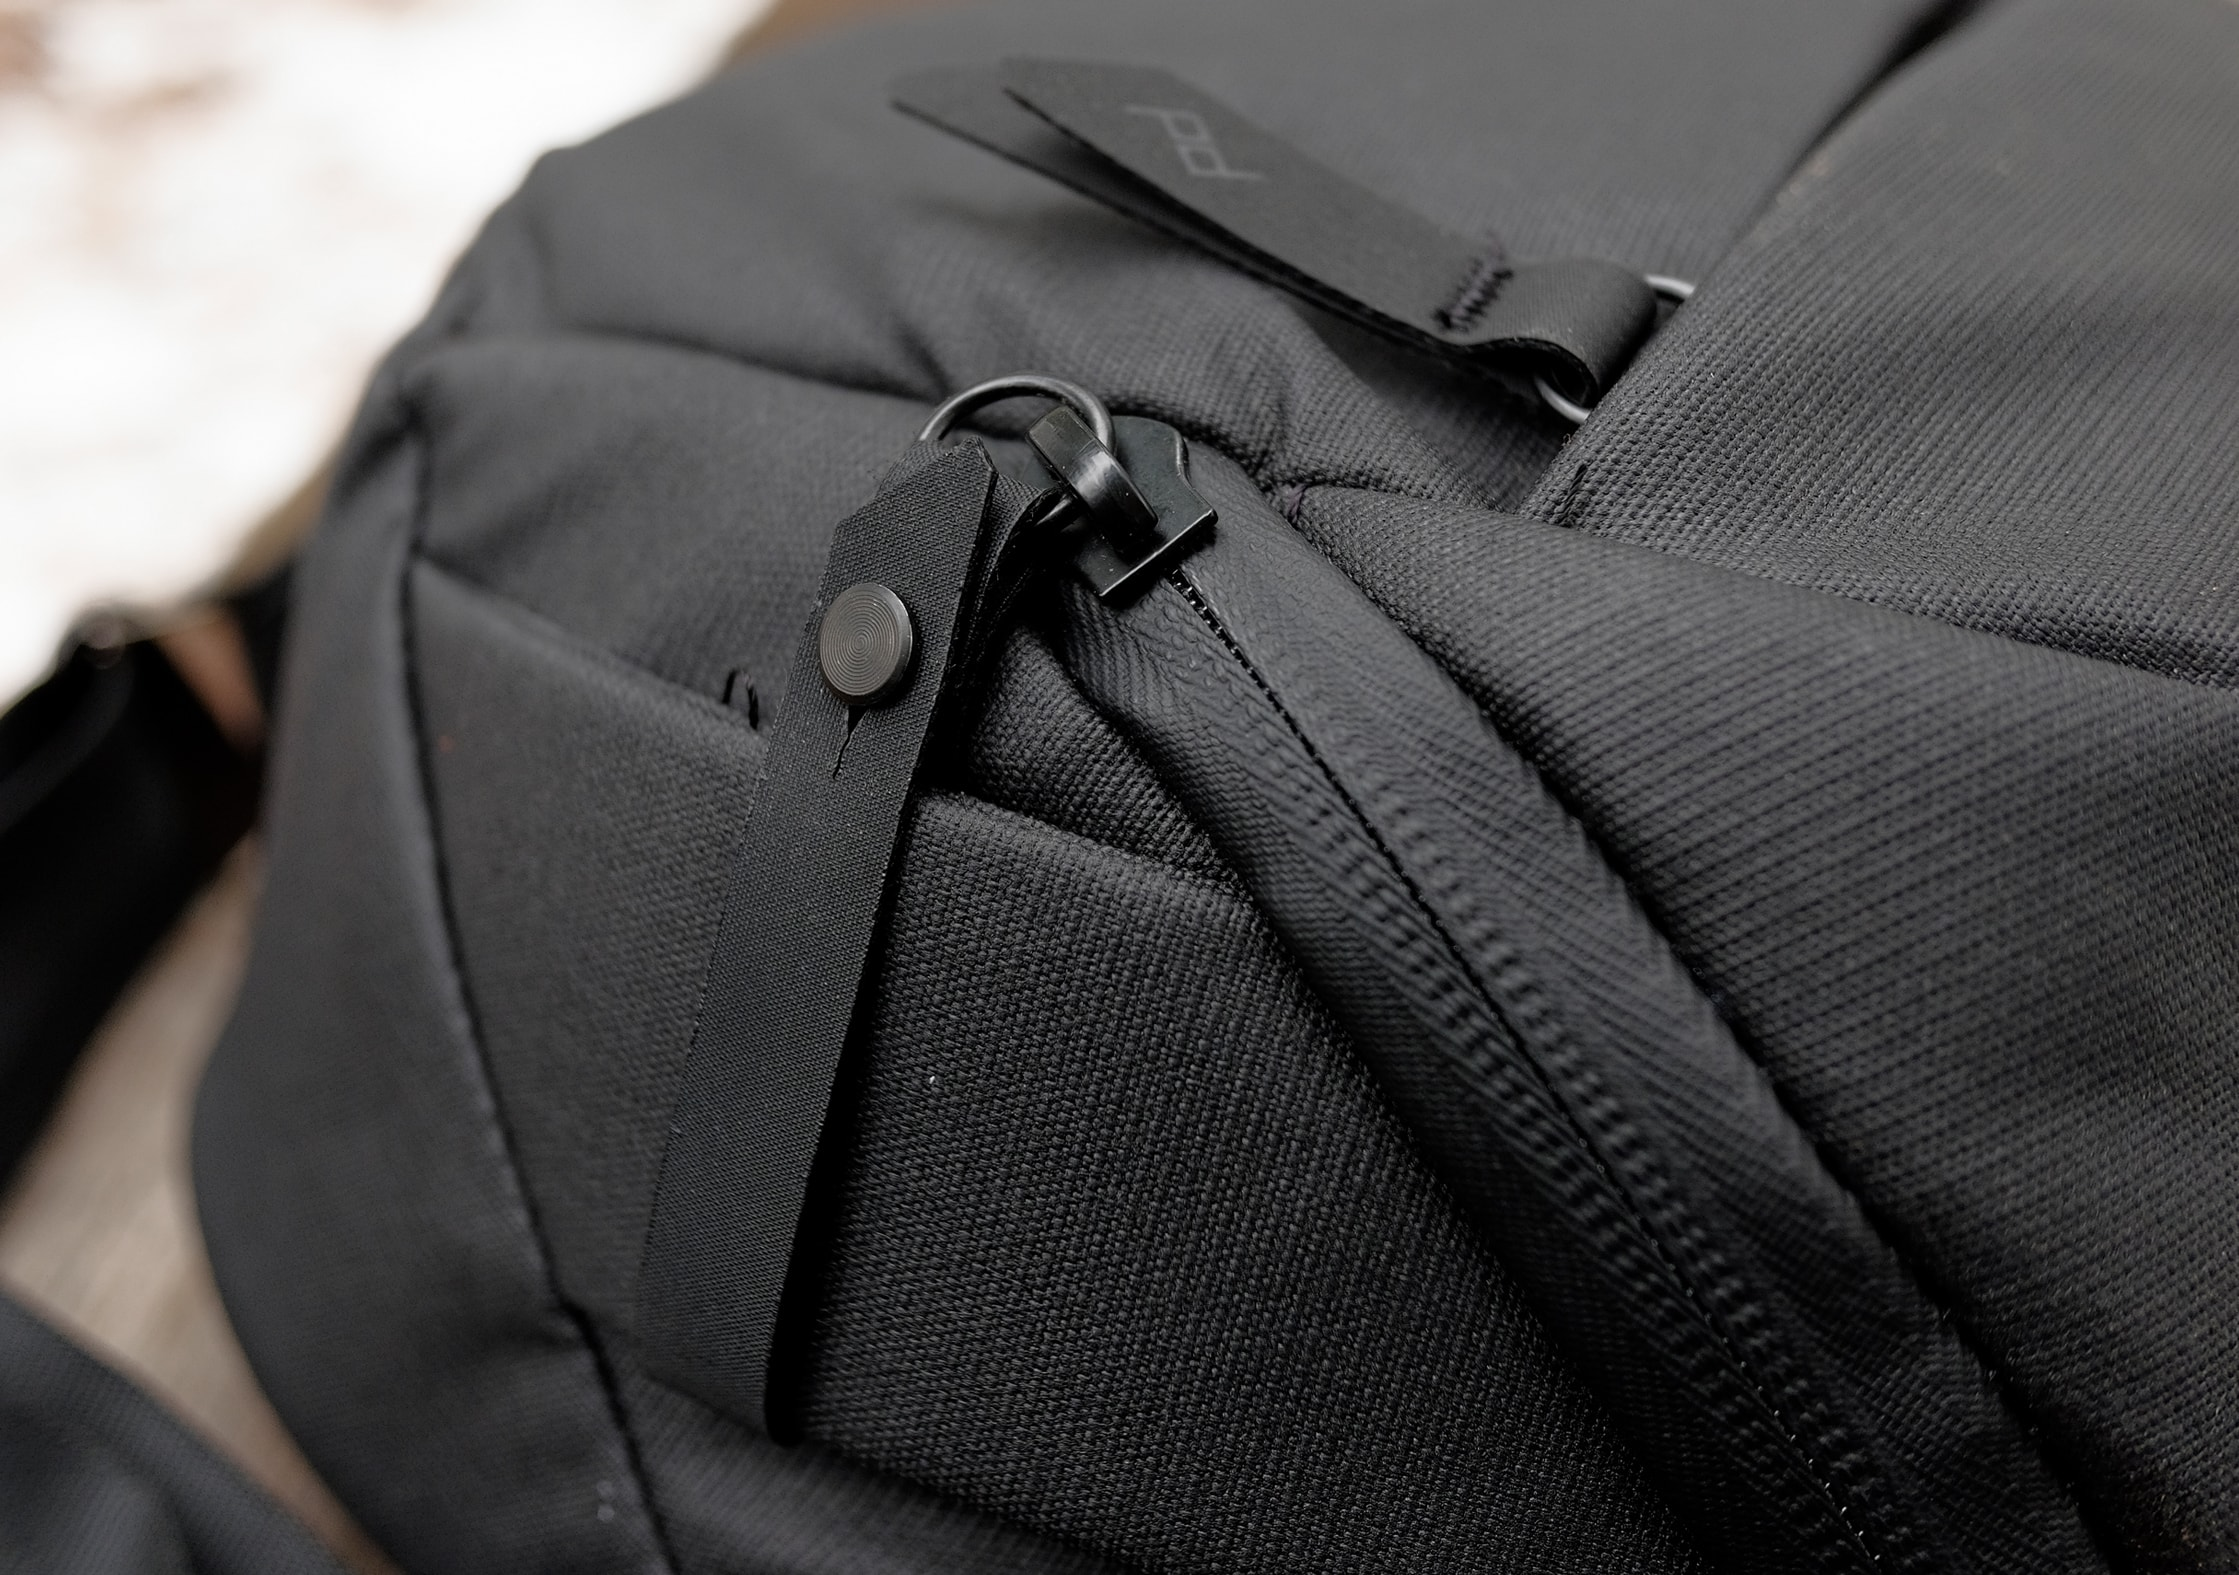 Peak Design Everyday Sling 5L Lockable Zippers